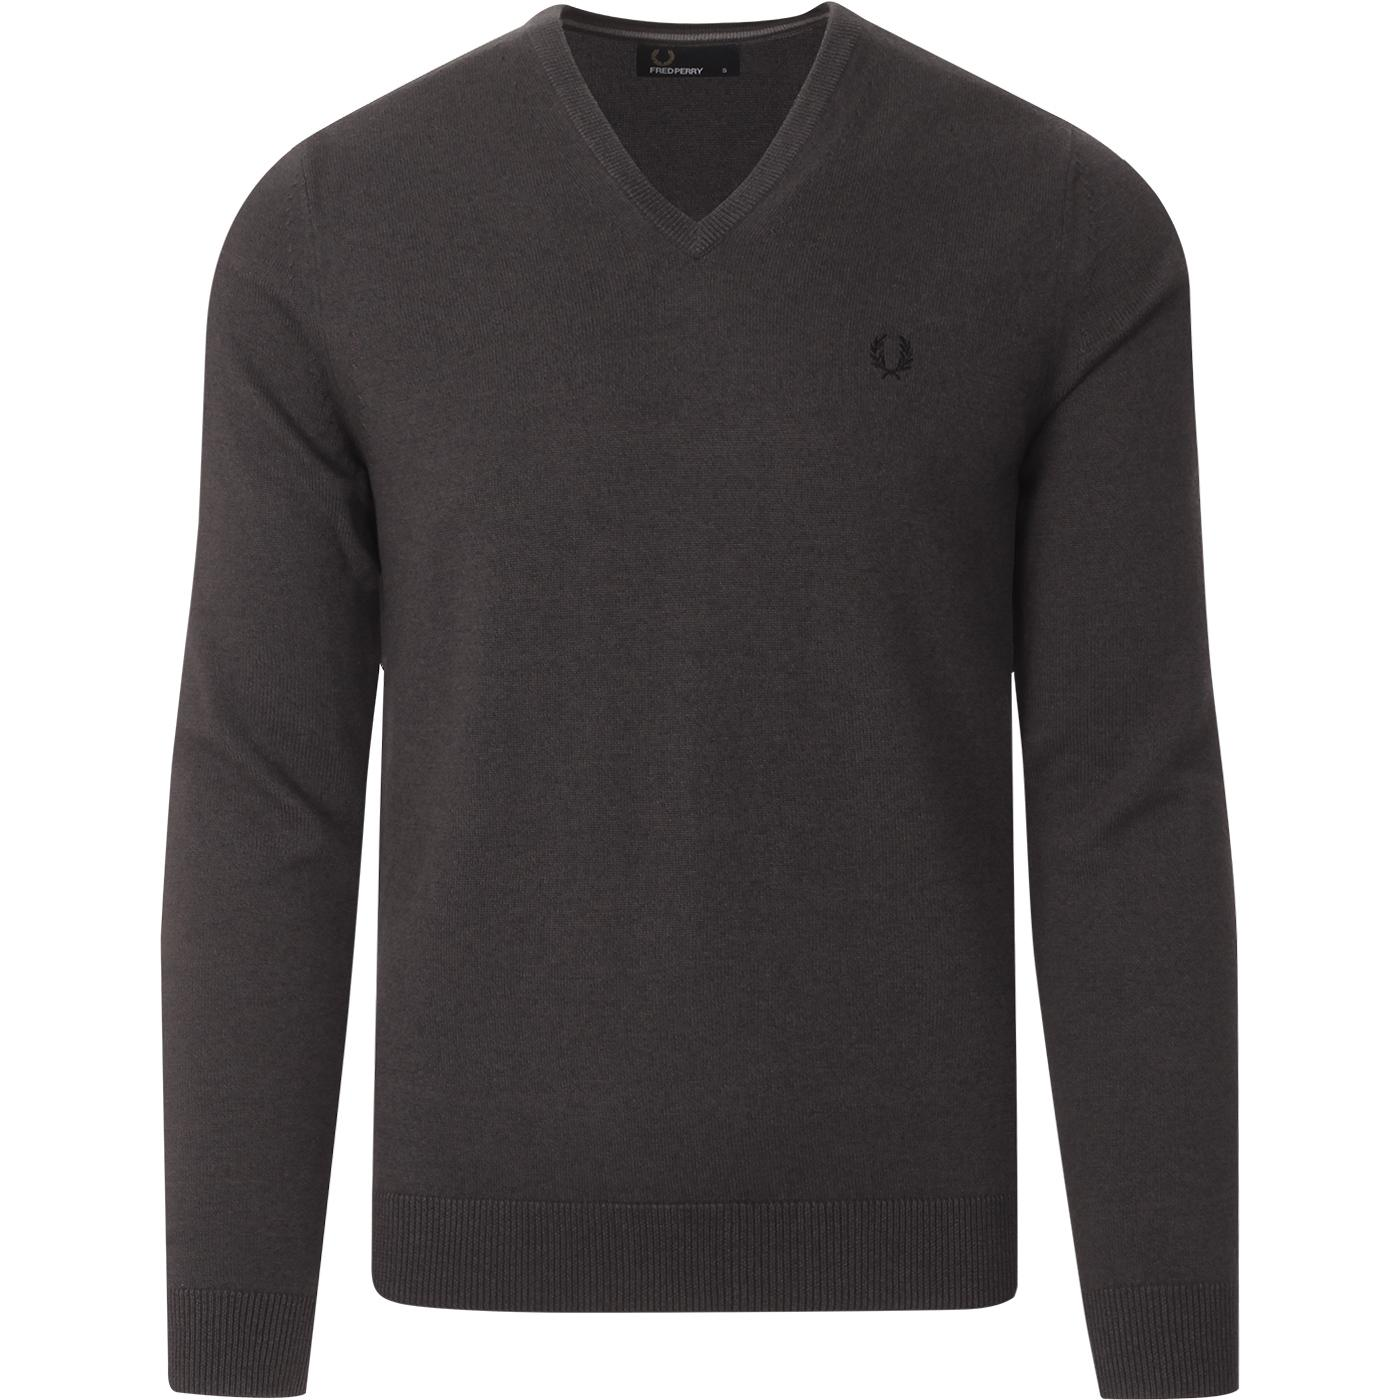 FRED PERRY Mod Tipped V-Neck Jumper (Graphite)